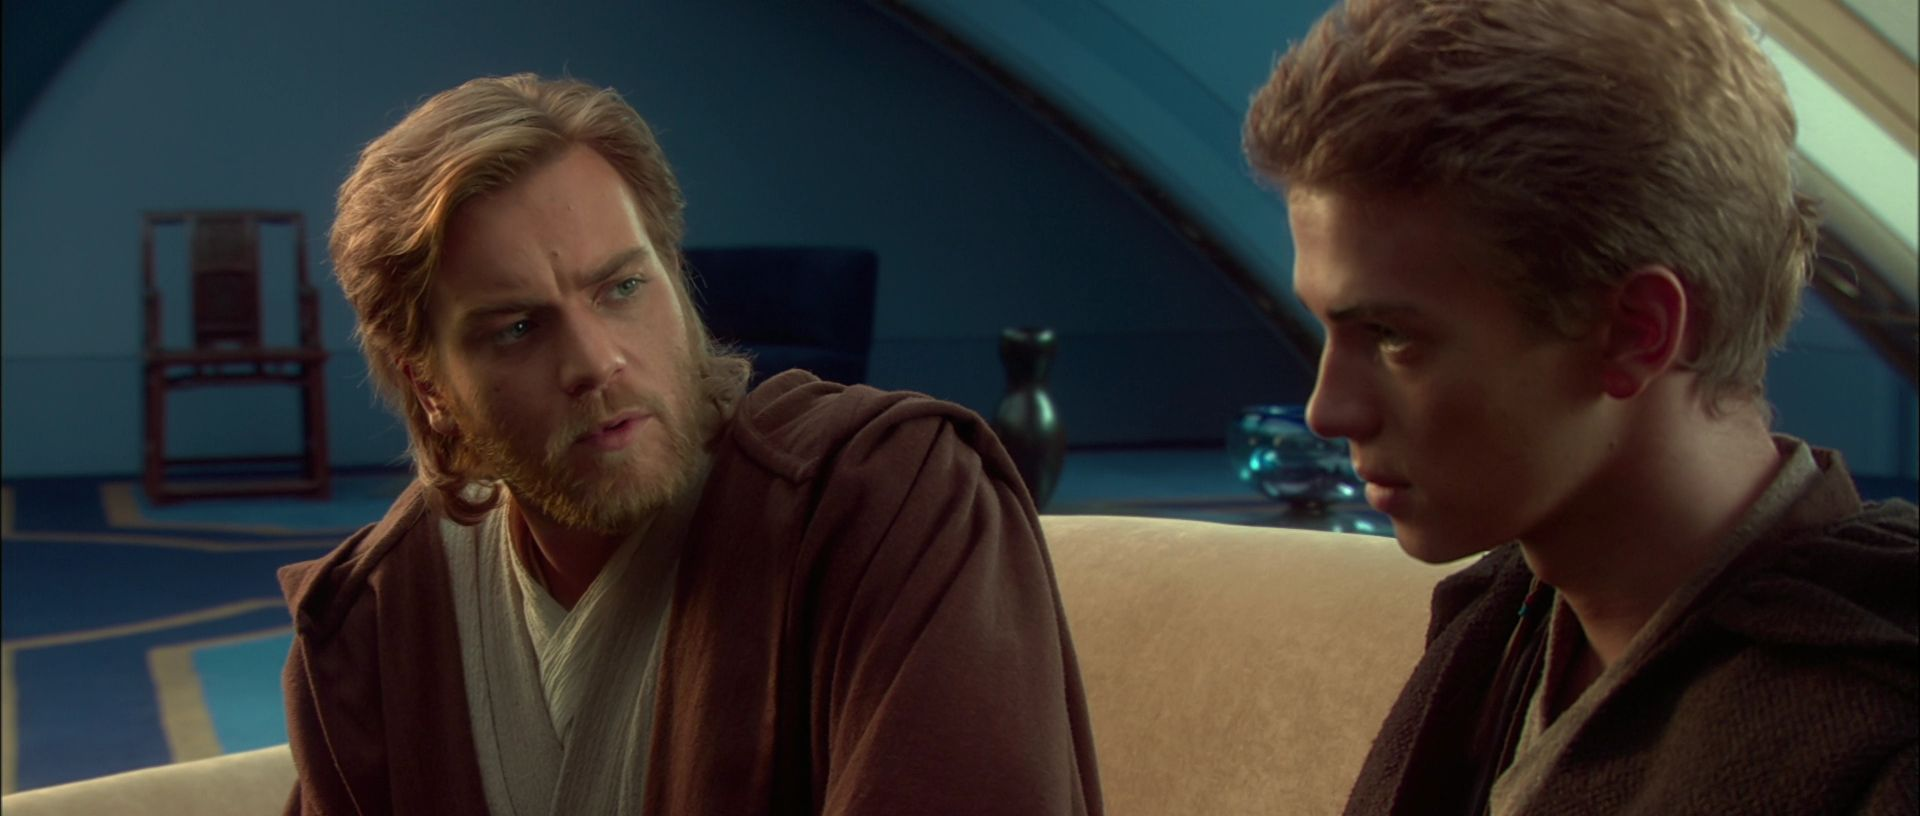 The star signs of the Star Wars prequels | SYFY WIRE